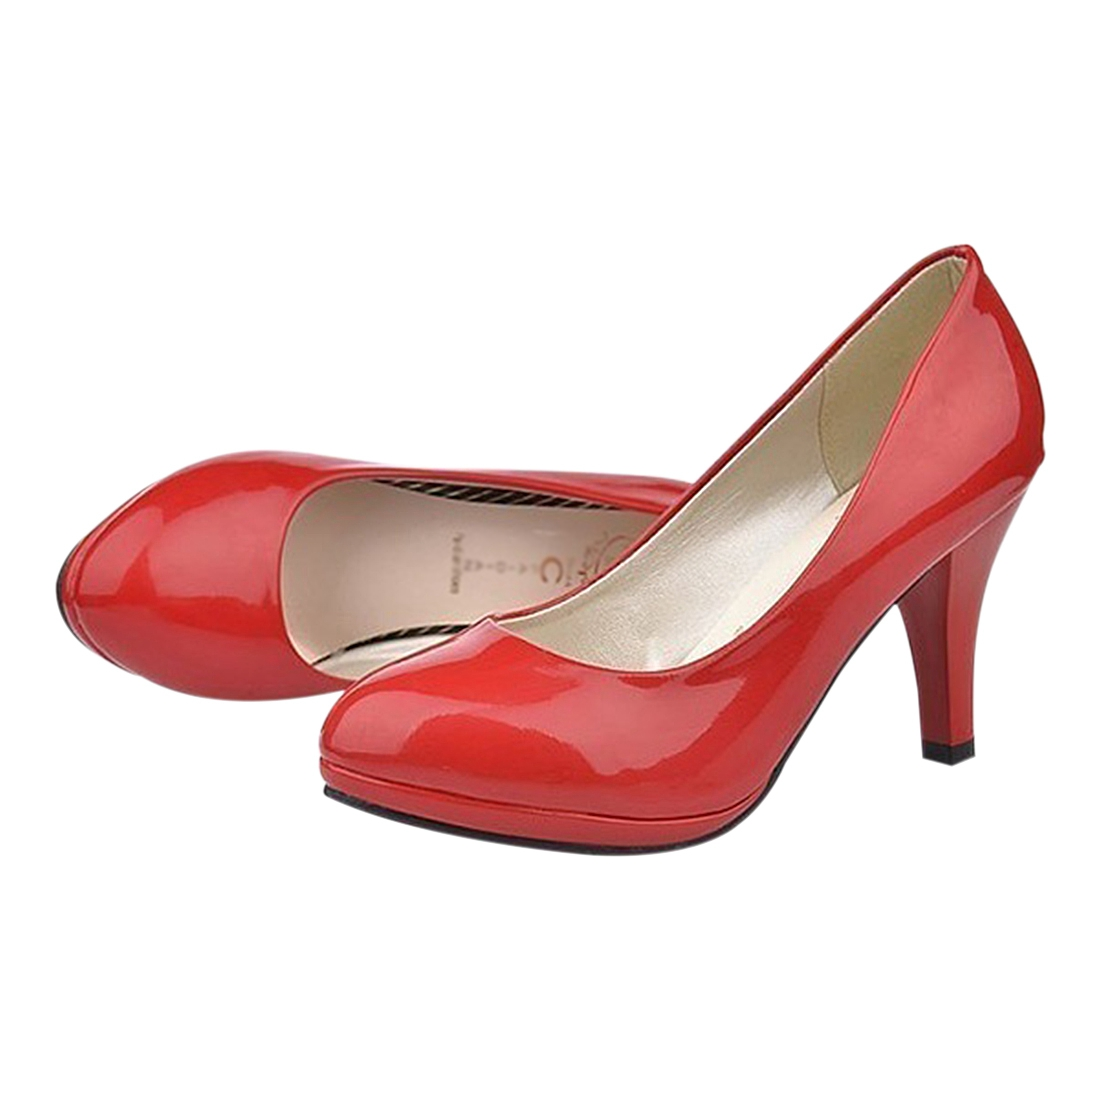 ASDS Classic Sexy Office Lady Round Toe Platform Low Heels Women Wedding Pumps Shoes